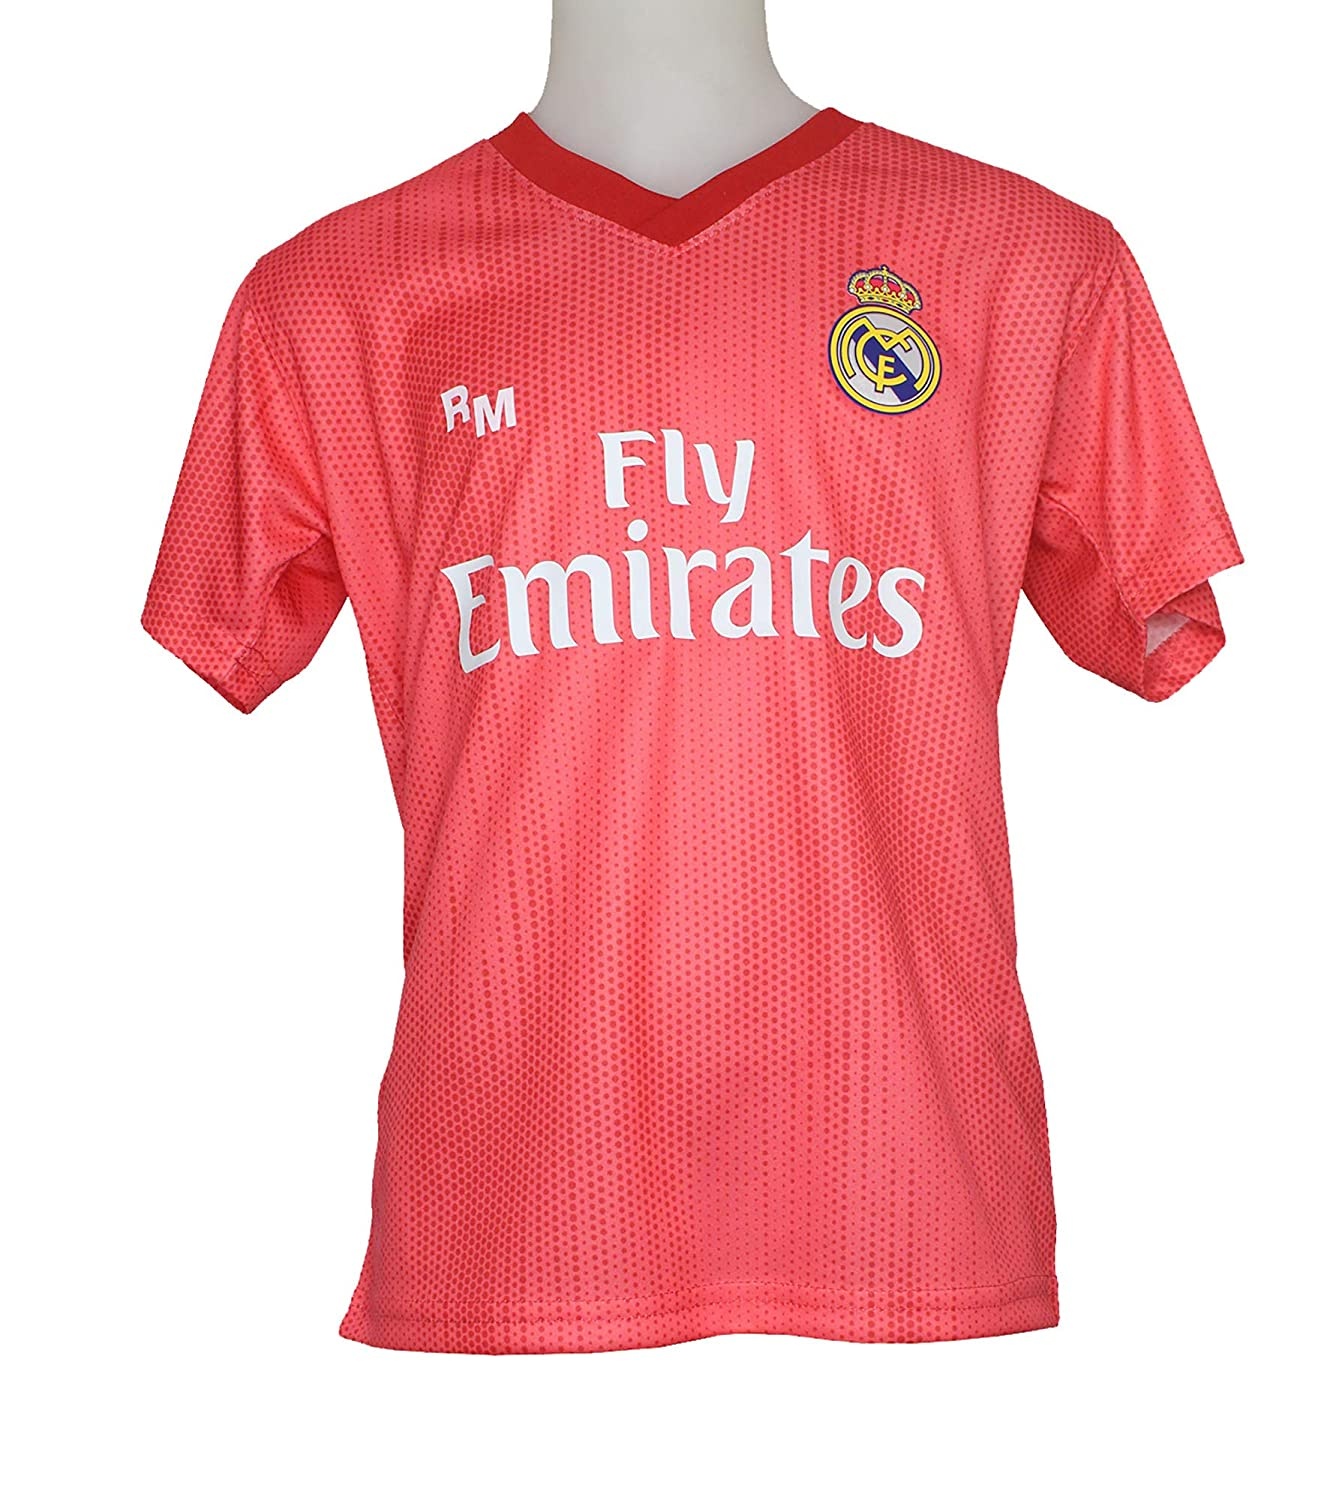 Camiseta - Personalizable - Tercera Equipación Replica Original Real Madrid 2018/2019: Amazon.es: Deportes y aire libre